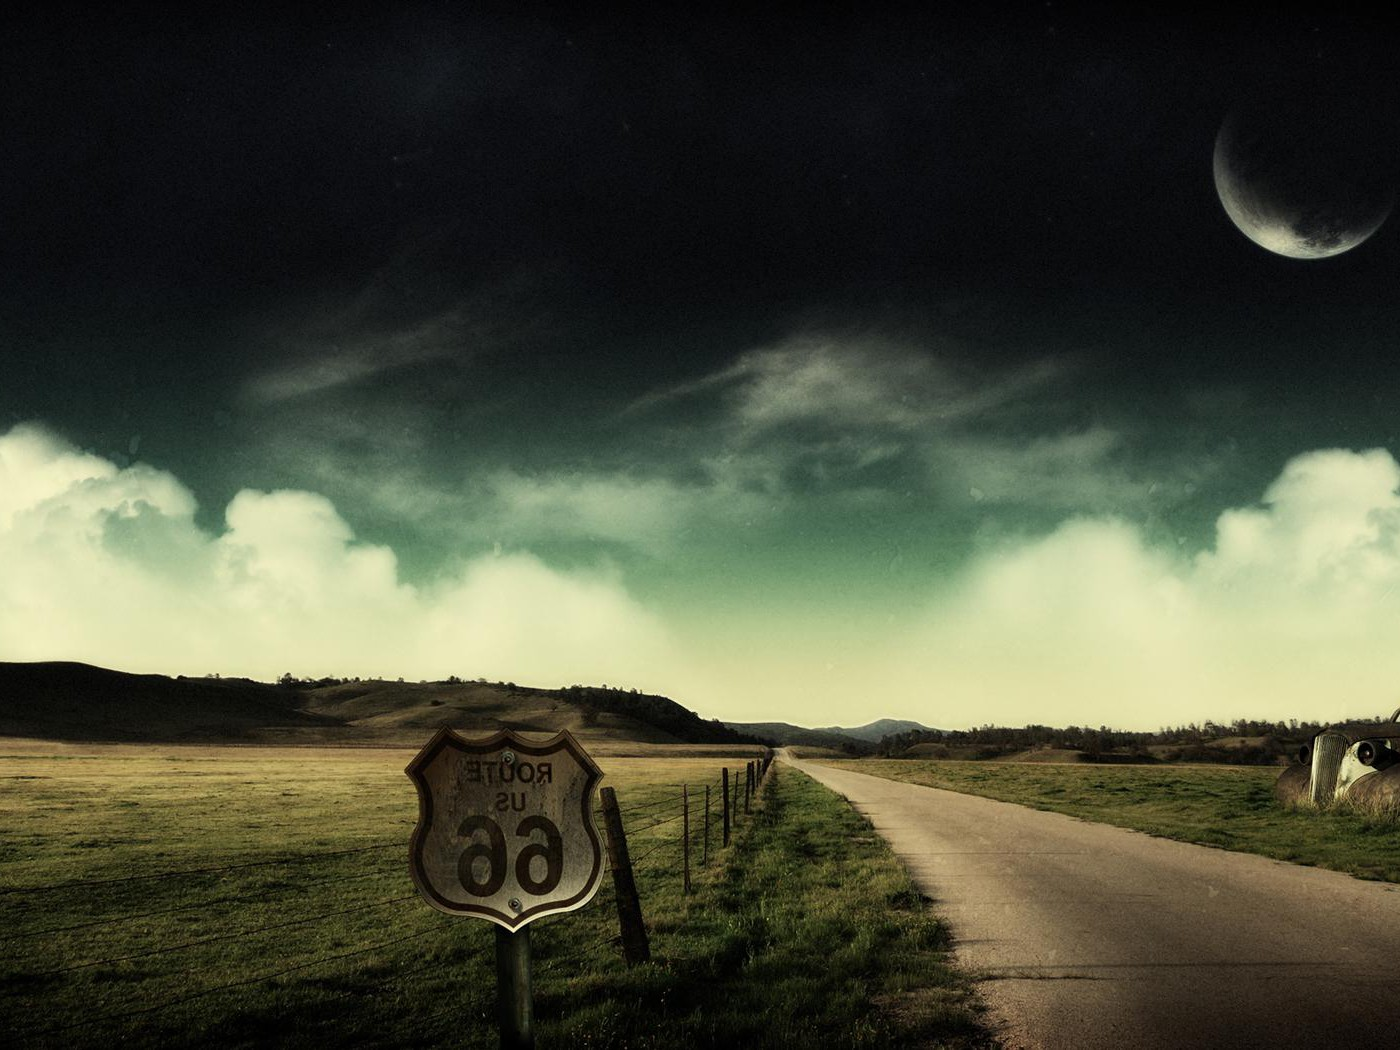 66 hd background wallpaper in high resolution for get route 66 1400x1050